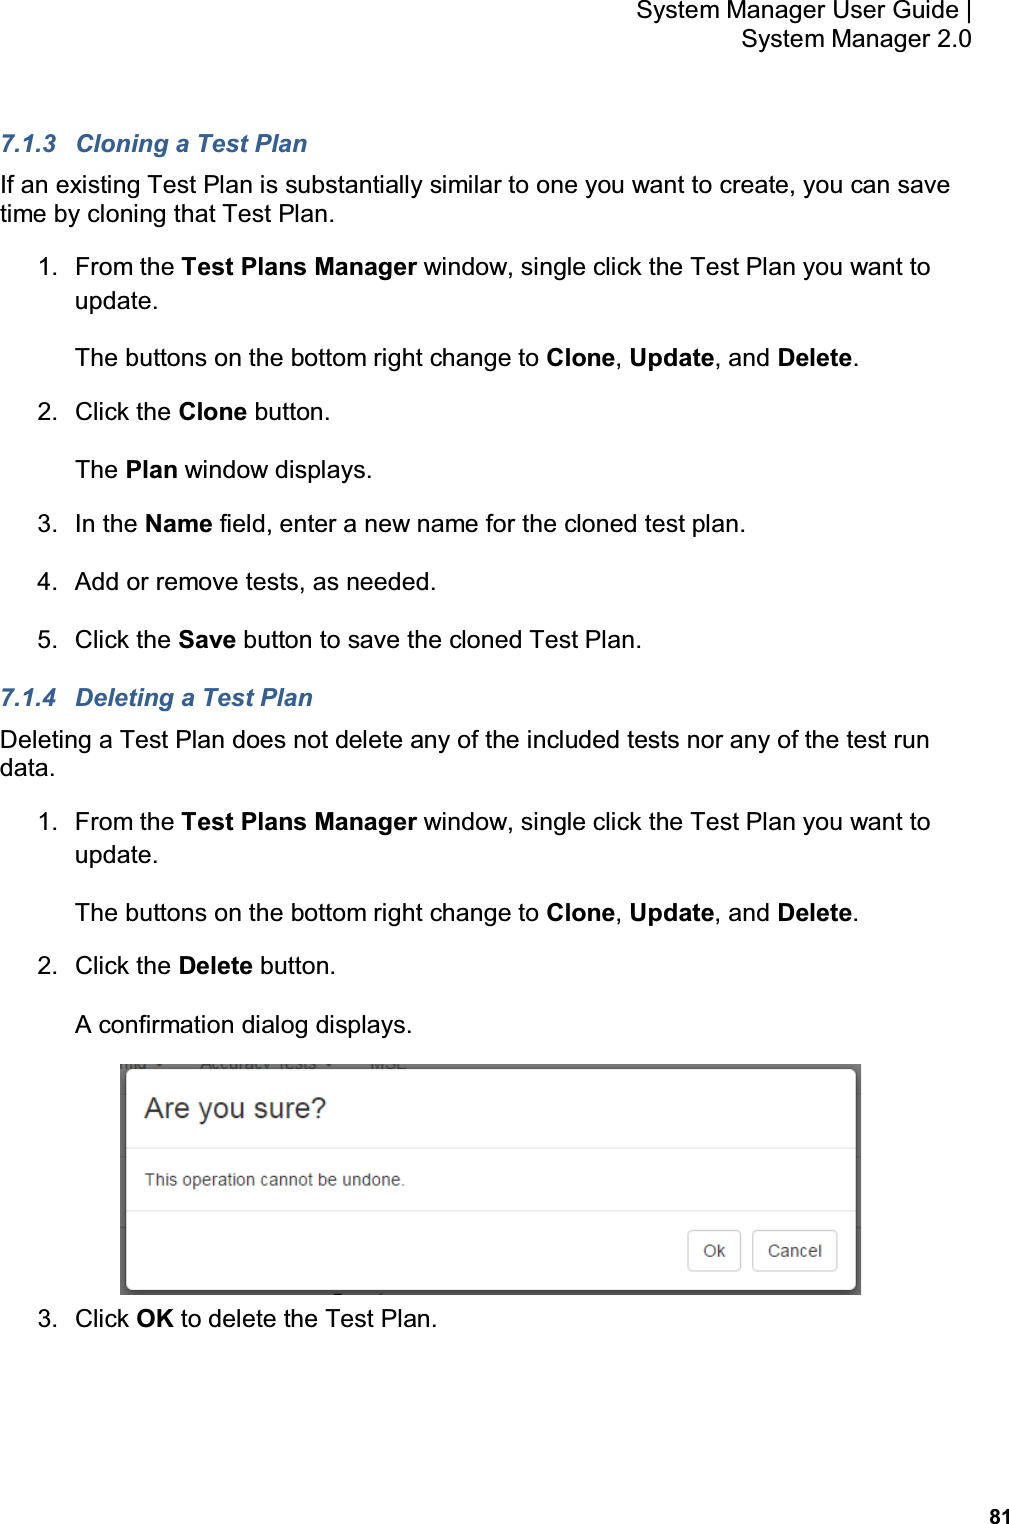 81 System Manager User Guide    System Manager 2.0 7.1.3  Cloning a Test Plan If an existing Test Plan is substantially similar to one you want to create, you can save time by cloning that Test Plan. 1.  From the Test Plans Manager window, single click the Test Plan you want to update. The buttons on the bottom right change to Clone, Update, and Delete. 2.  Click the Clone button. The Plan window displays. 3.  In the Name field, enter a new name for the cloned test plan. 4.  Add or remove tests, as needed. 5.  Click the Save button to save the cloned Test Plan. 7.1.4  Deleting a Test Plan Deleting a Test Plan does not delete any of the included tests nor any of the test run data. 1.  From the Test Plans Manager window, single click the Test Plan you want to update. The buttons on the bottom right change to Clone, Update, and Delete. 2.  Click the Delete button. A confirmation dialog displays.  3.  Click OK to delete the Test Plan.